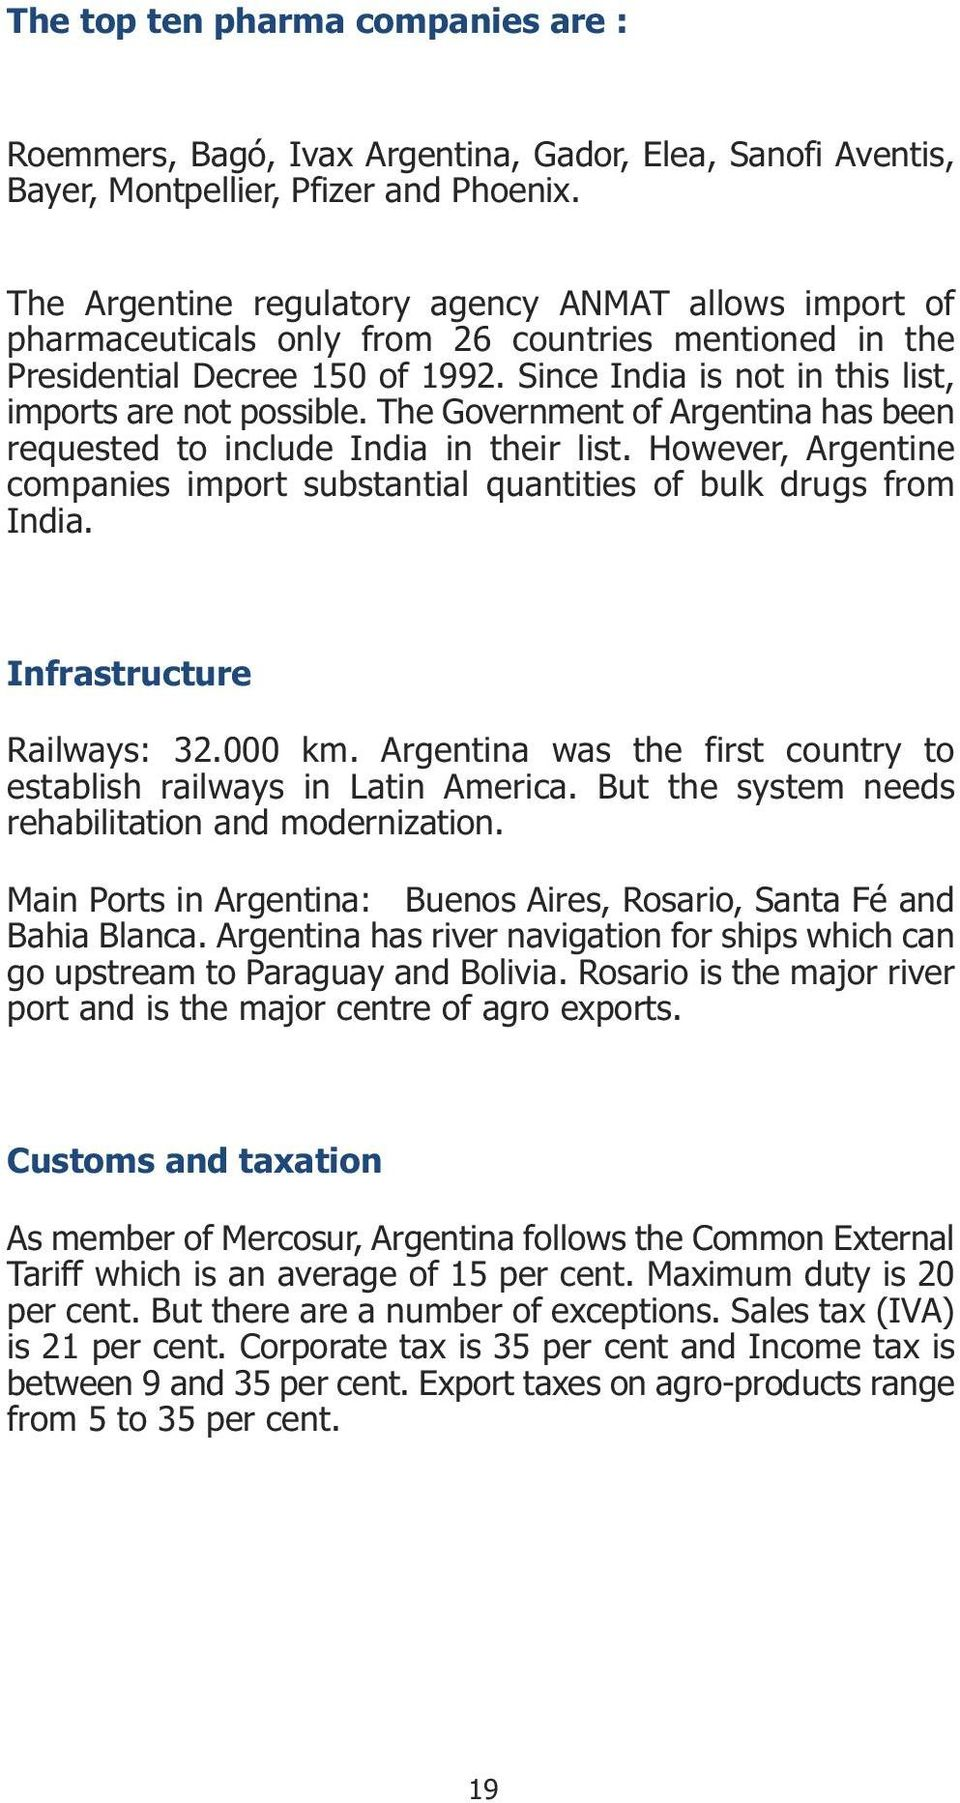 Since India is not in this list, imports are not possible. The Government of Argentina has been requested to include India in their list.